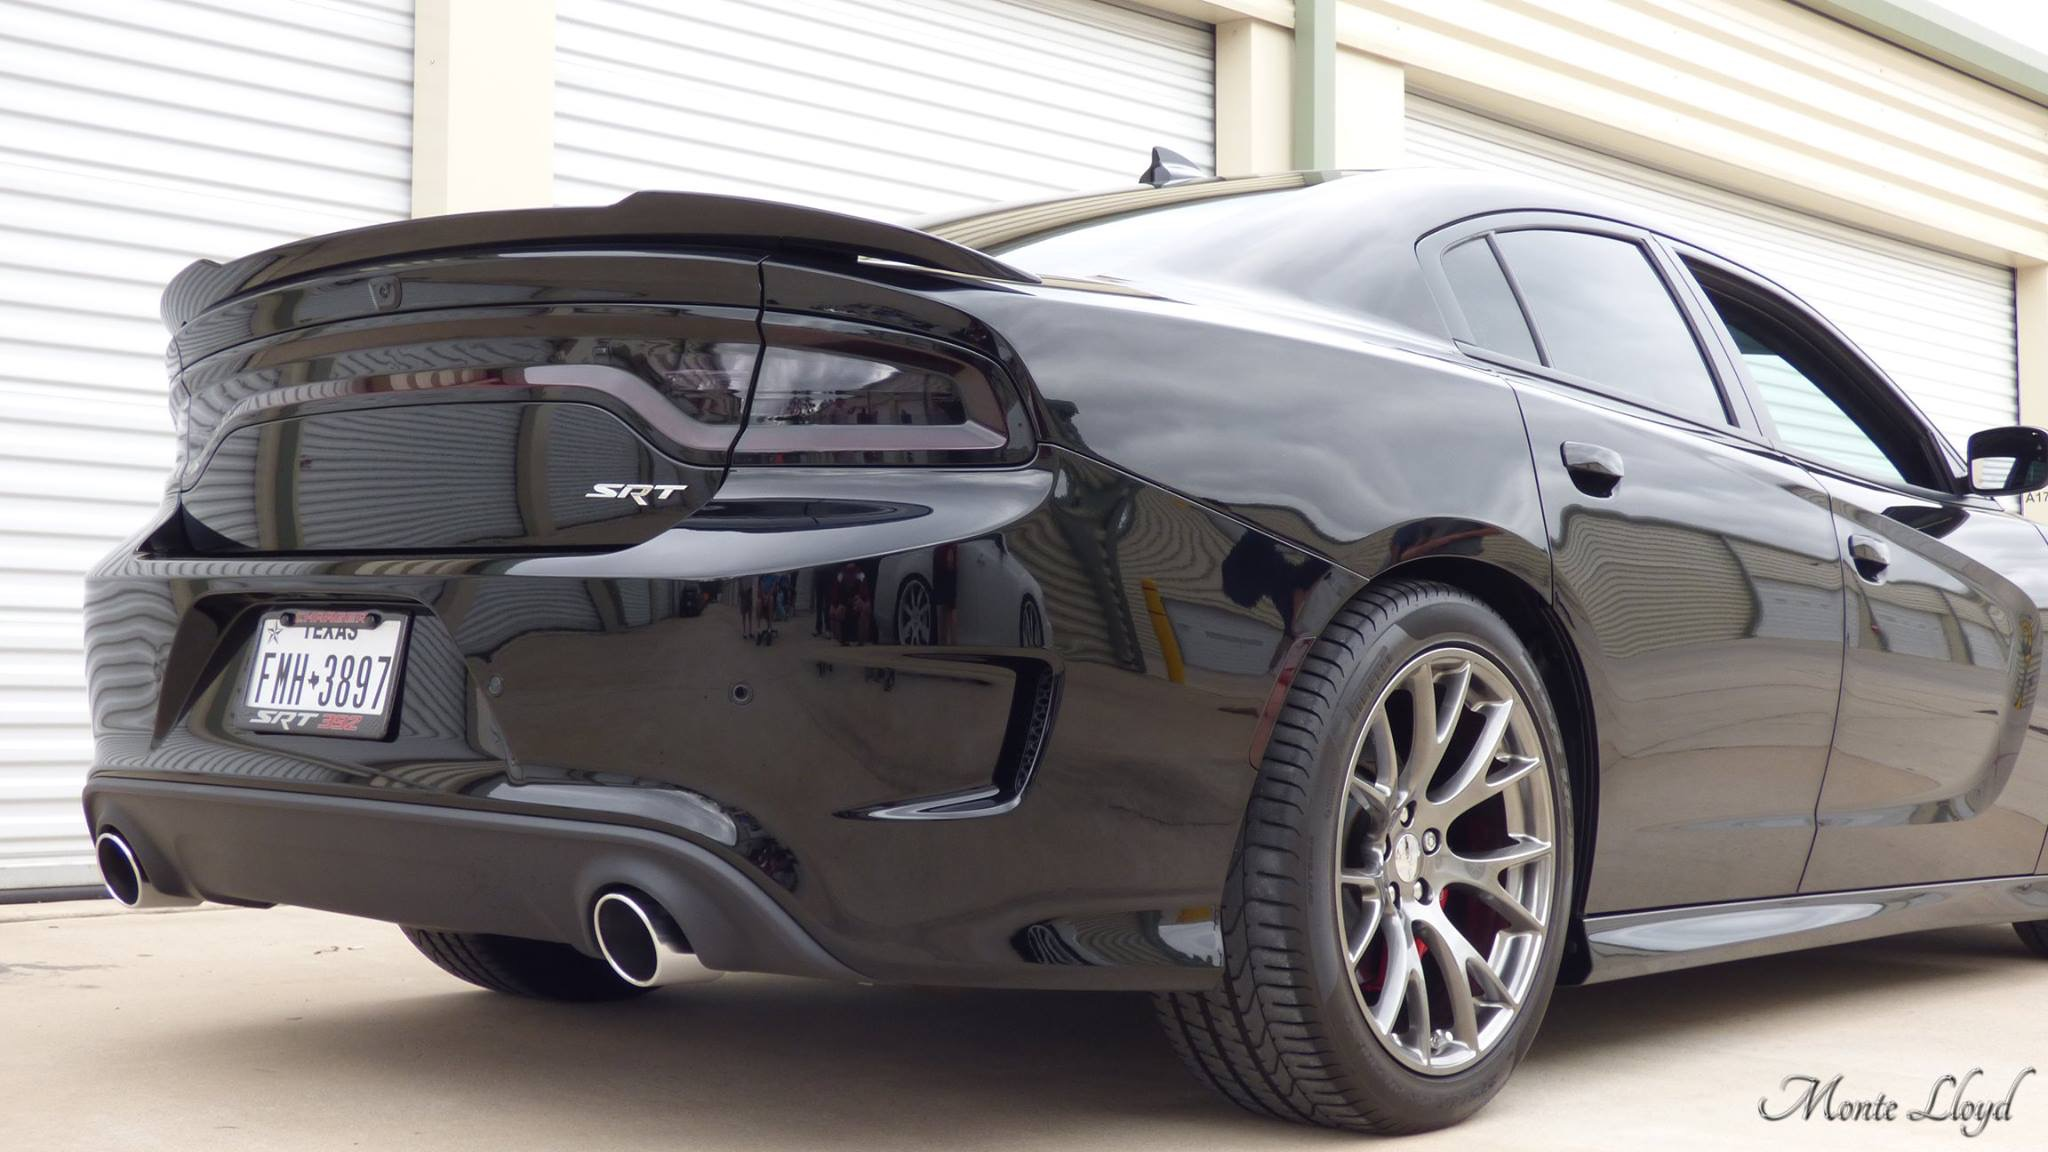 2015 Dodge Charger SRT 392 lowered | SRT Hellcat Forum